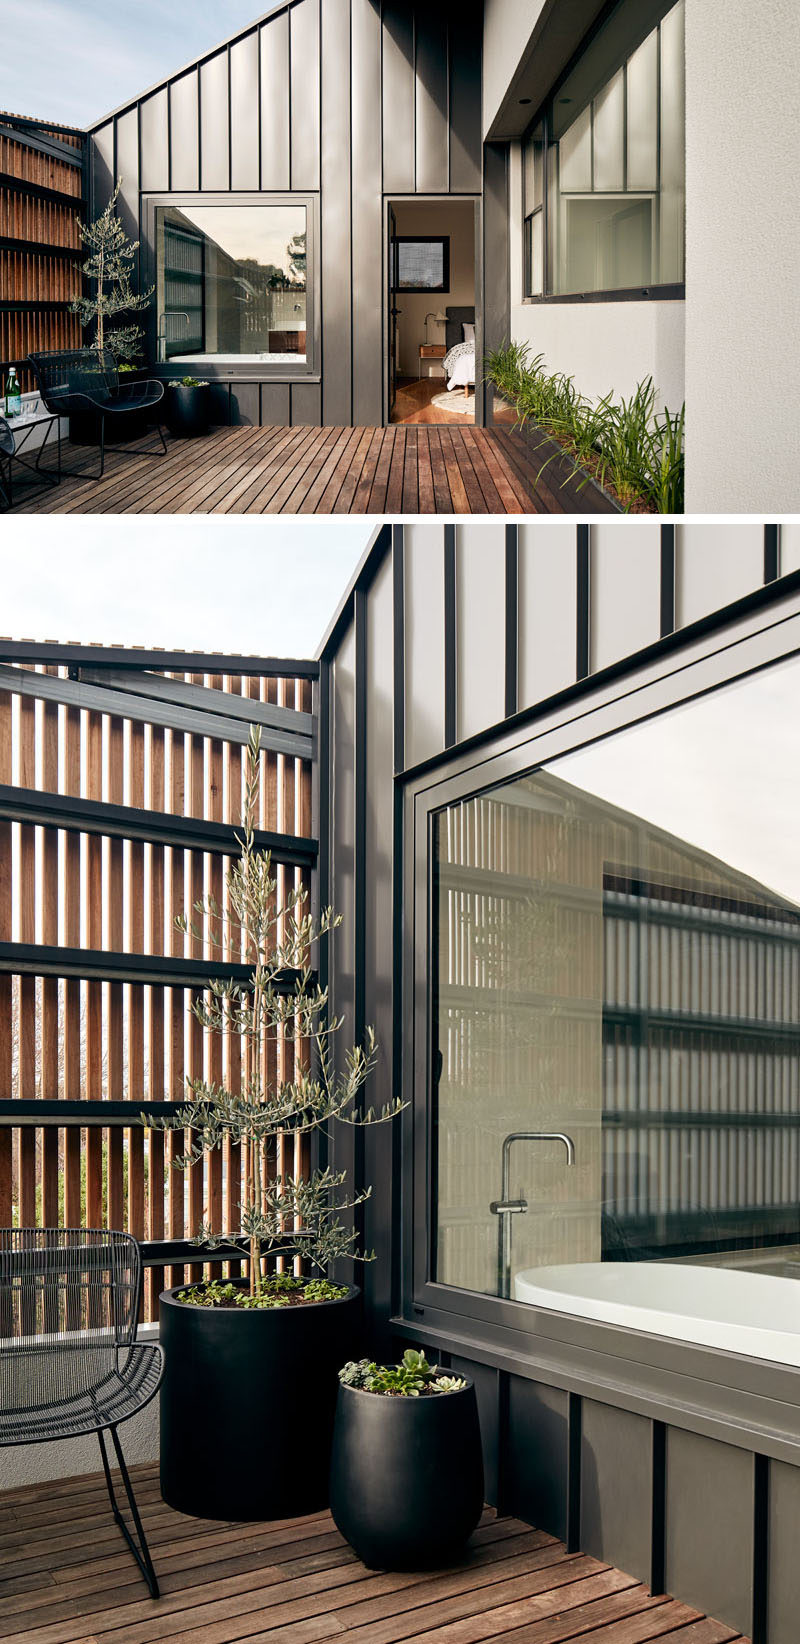 This modern balcony, home to potted plants and an outdoor seating area, hides behind a wood screen that covers the facade of the home. #ModernHouse #Balcony #WoodScreen